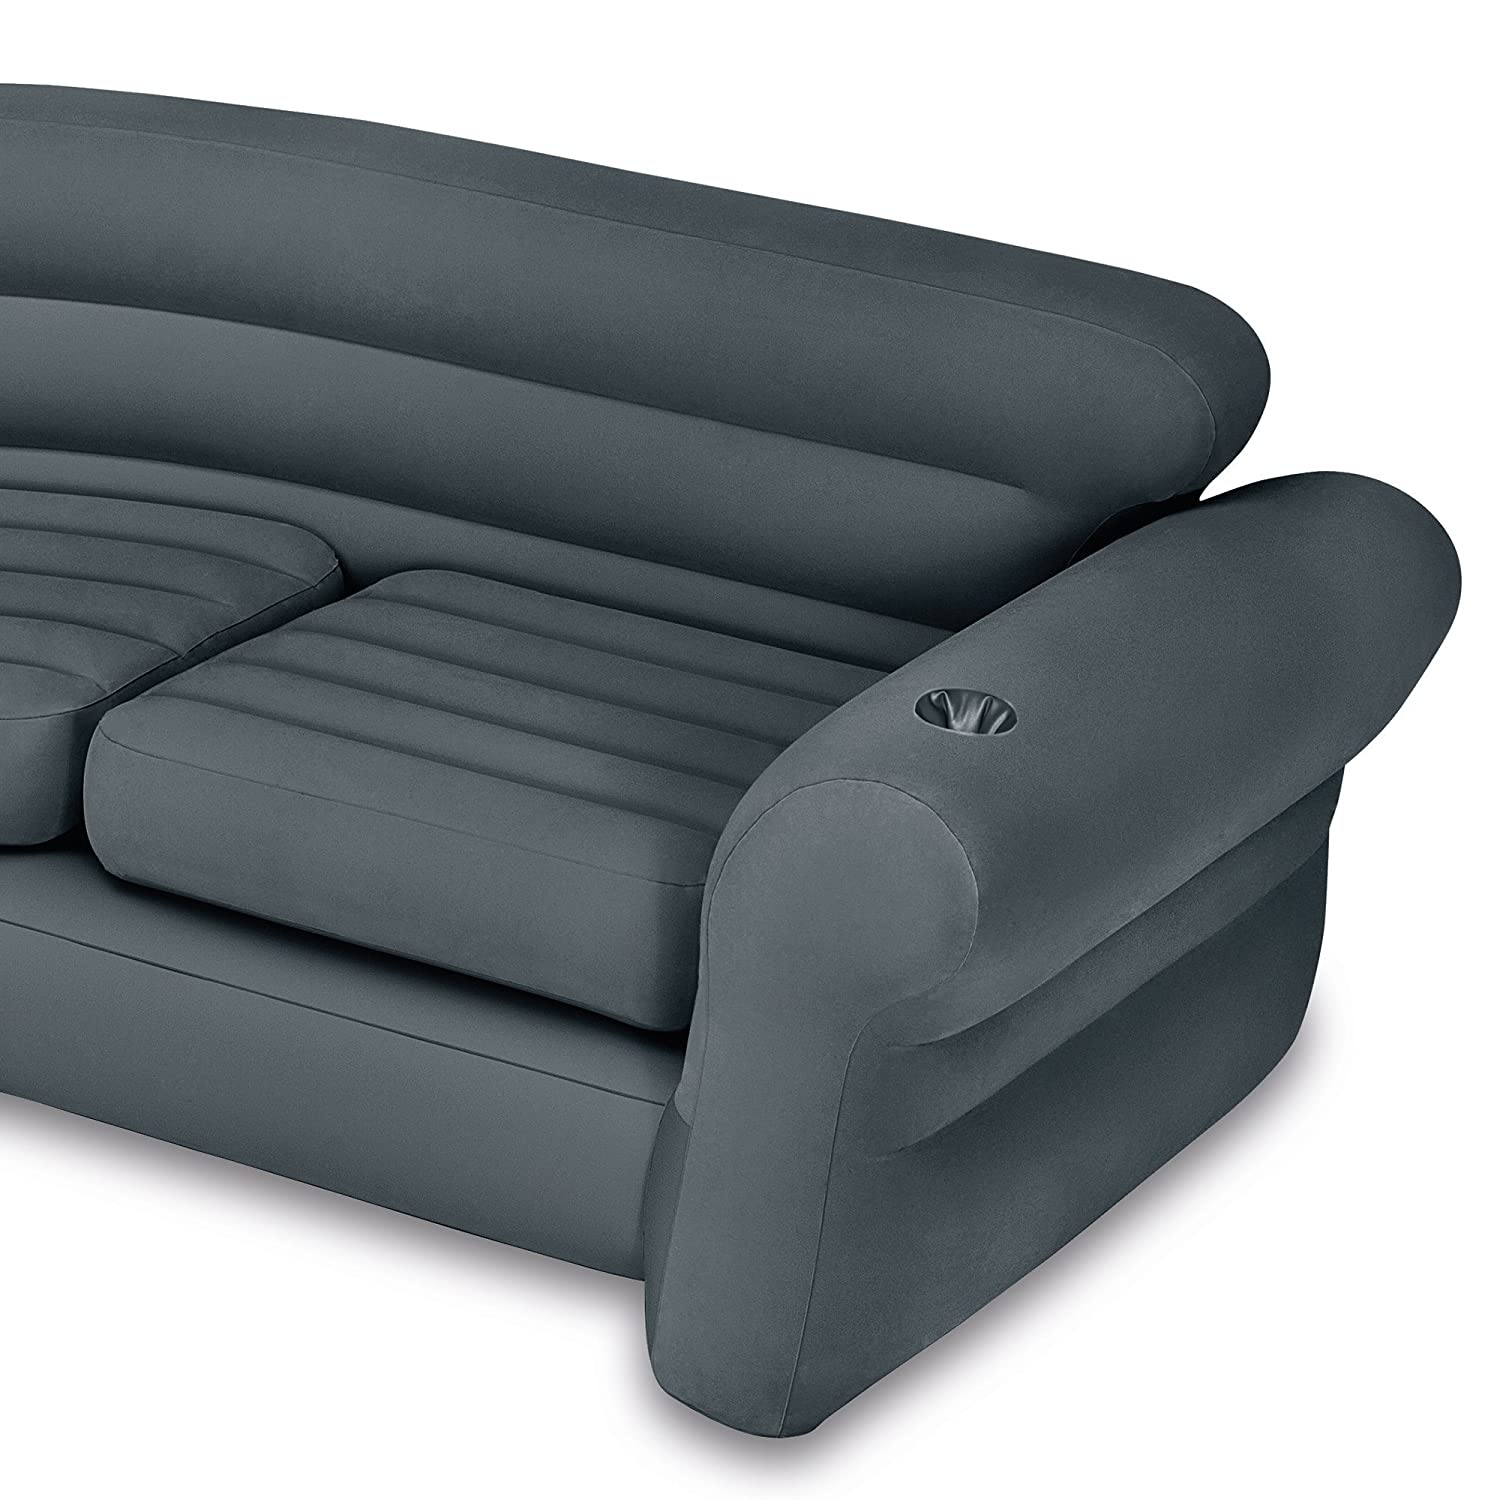 Intex Inflatable Corner Sofa 101 X 80 X 30